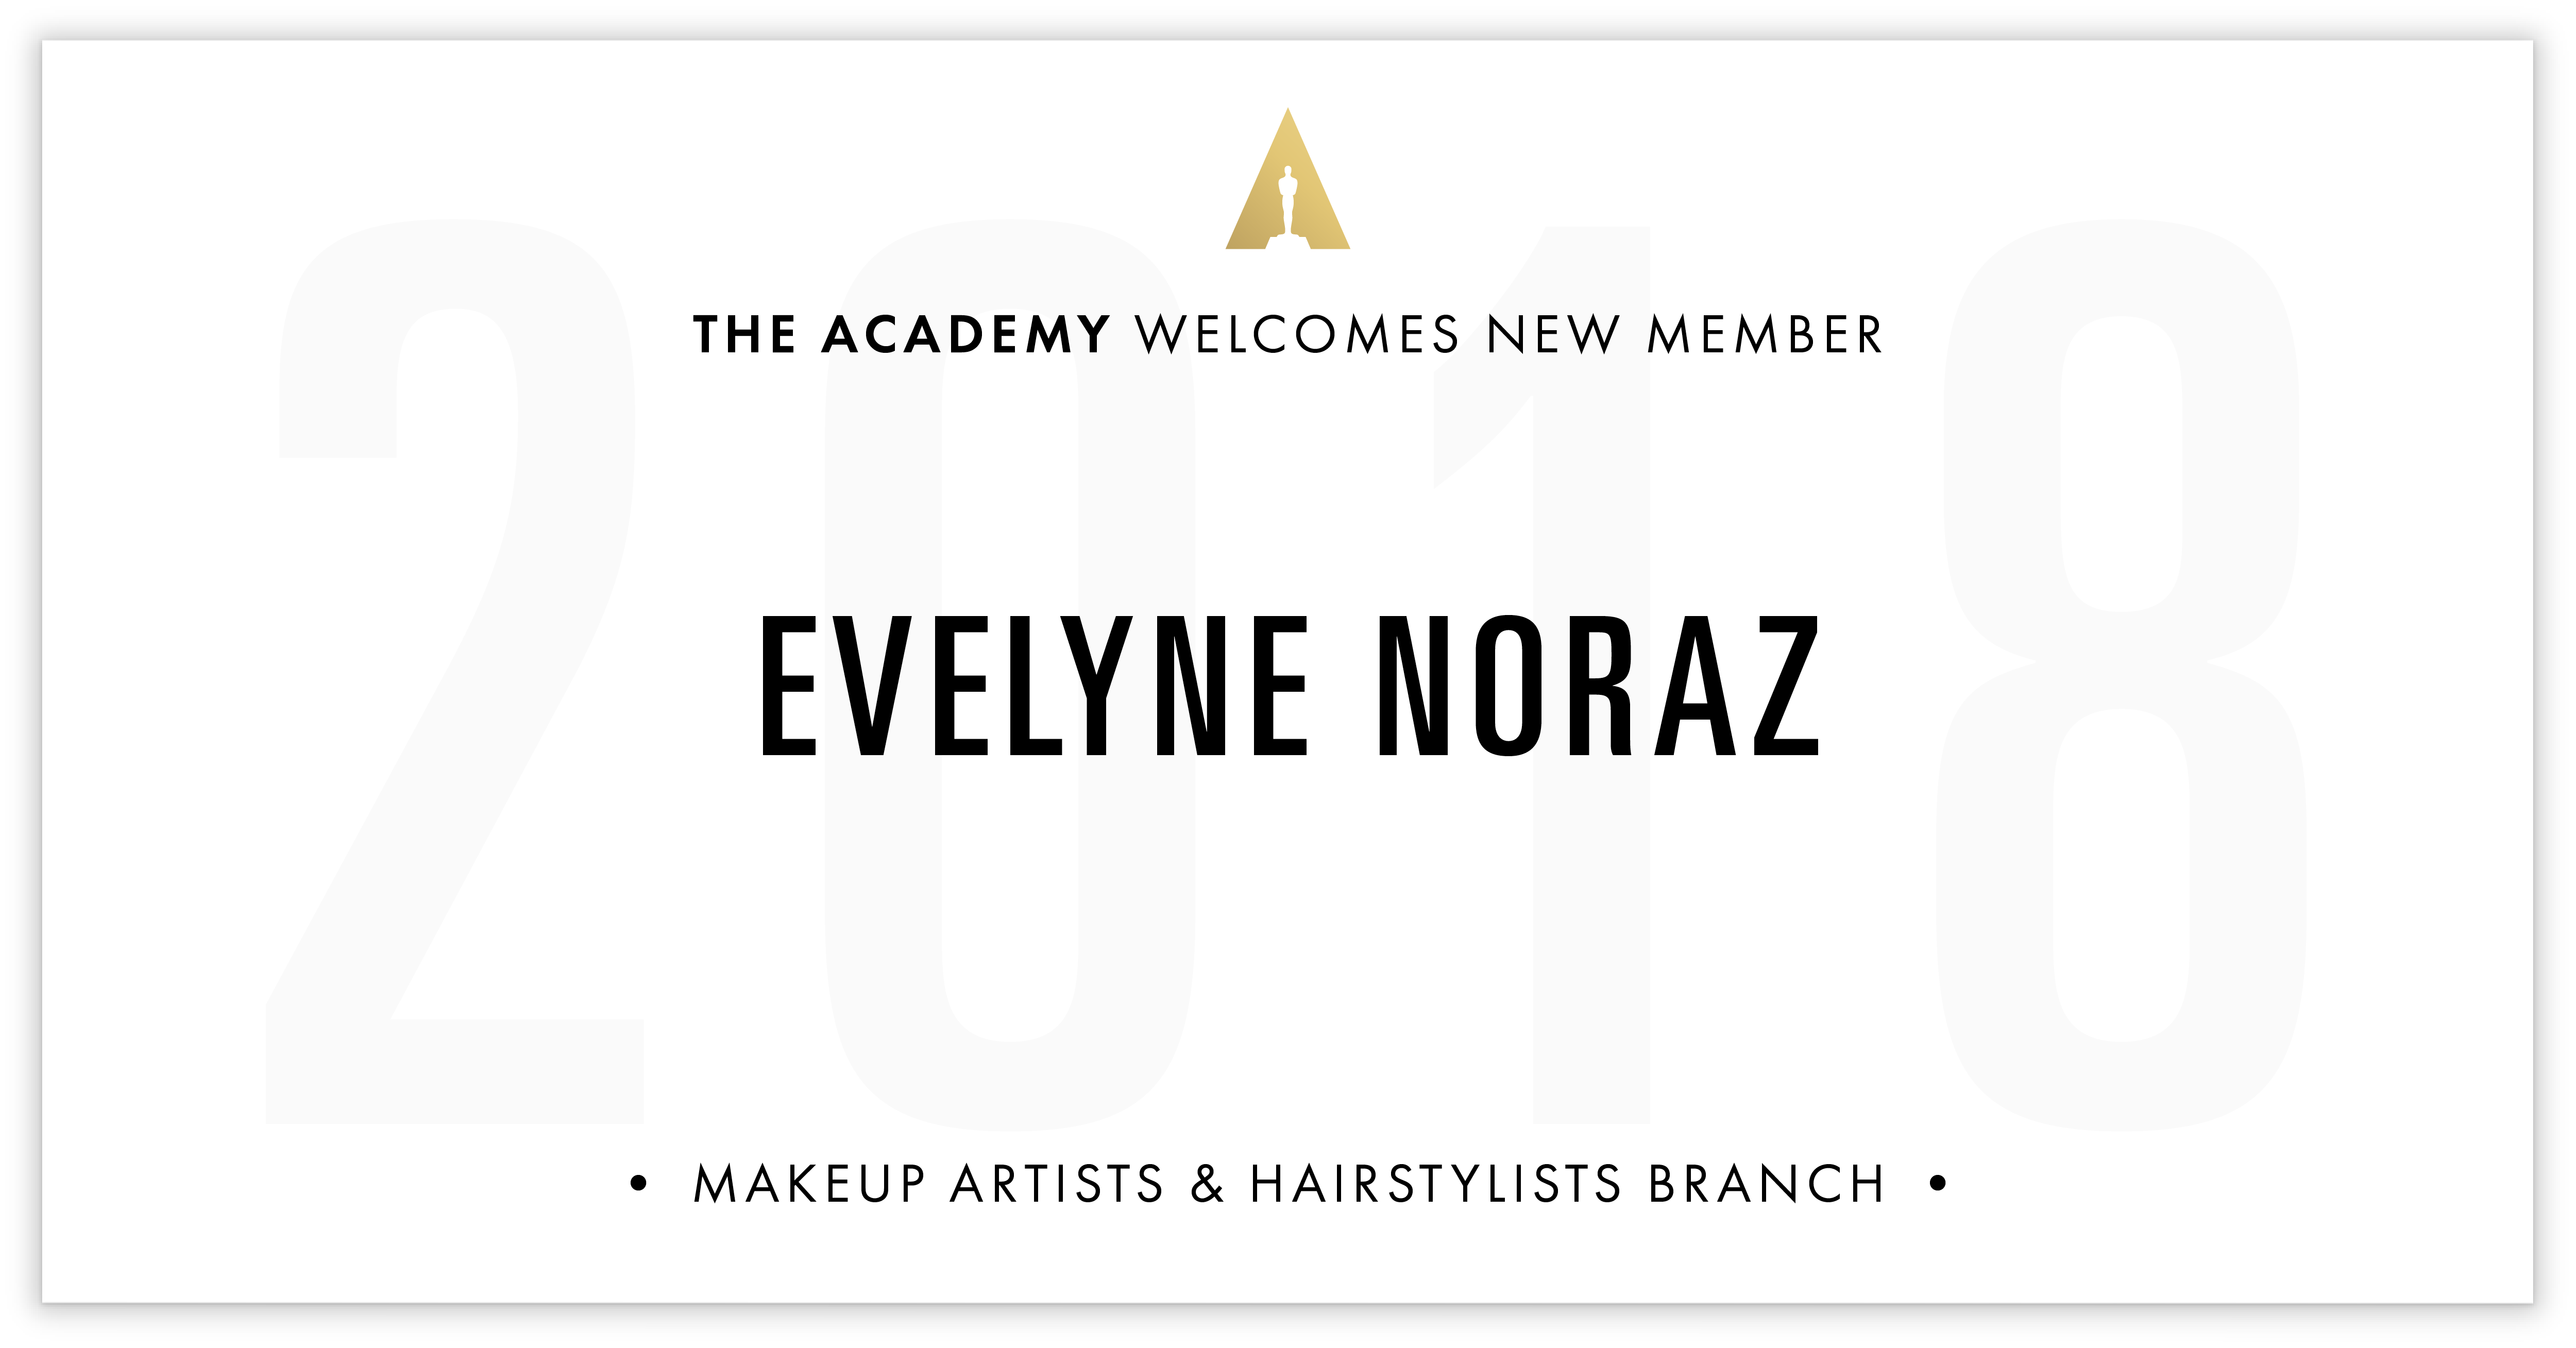 Evelyne Noraz is invited!